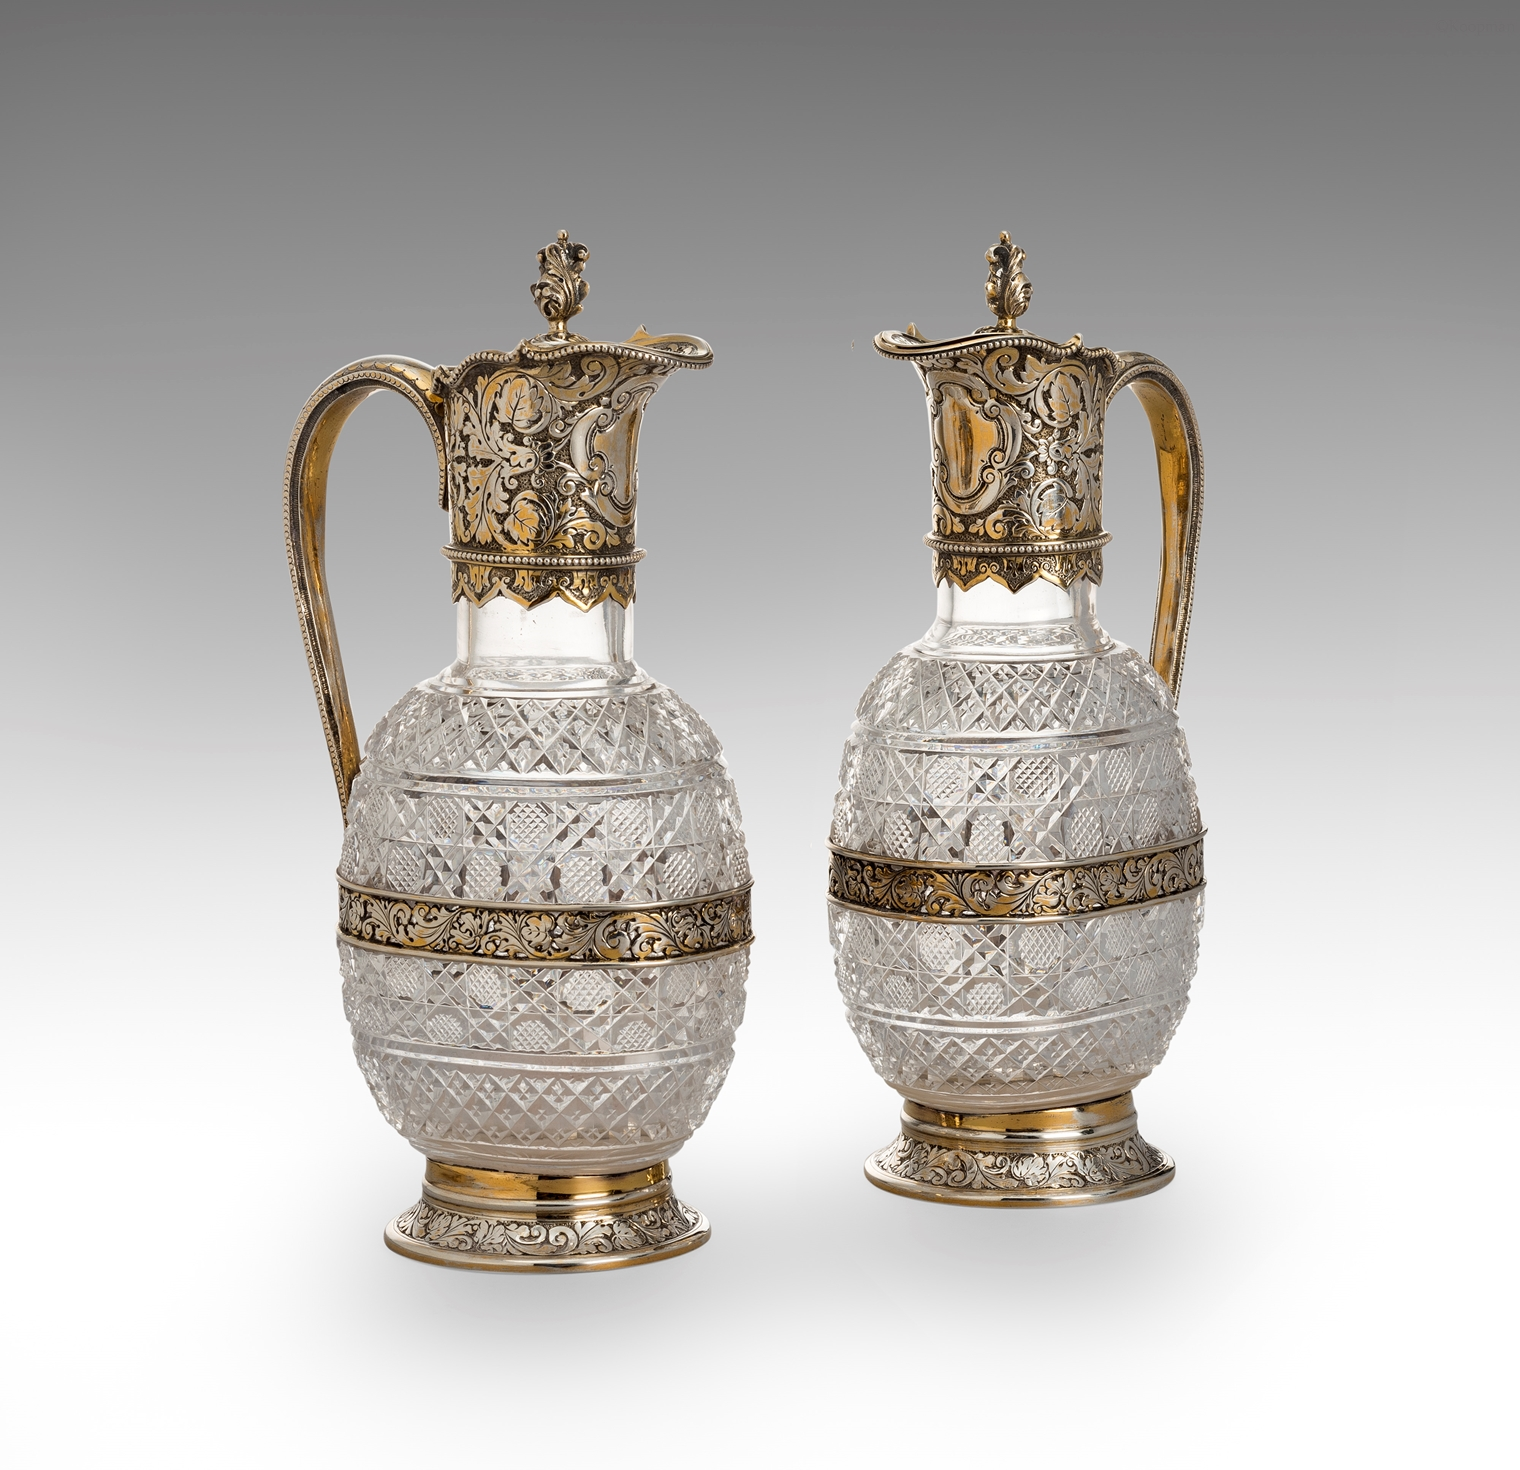 A Pair of Victorian Spirit Decanters